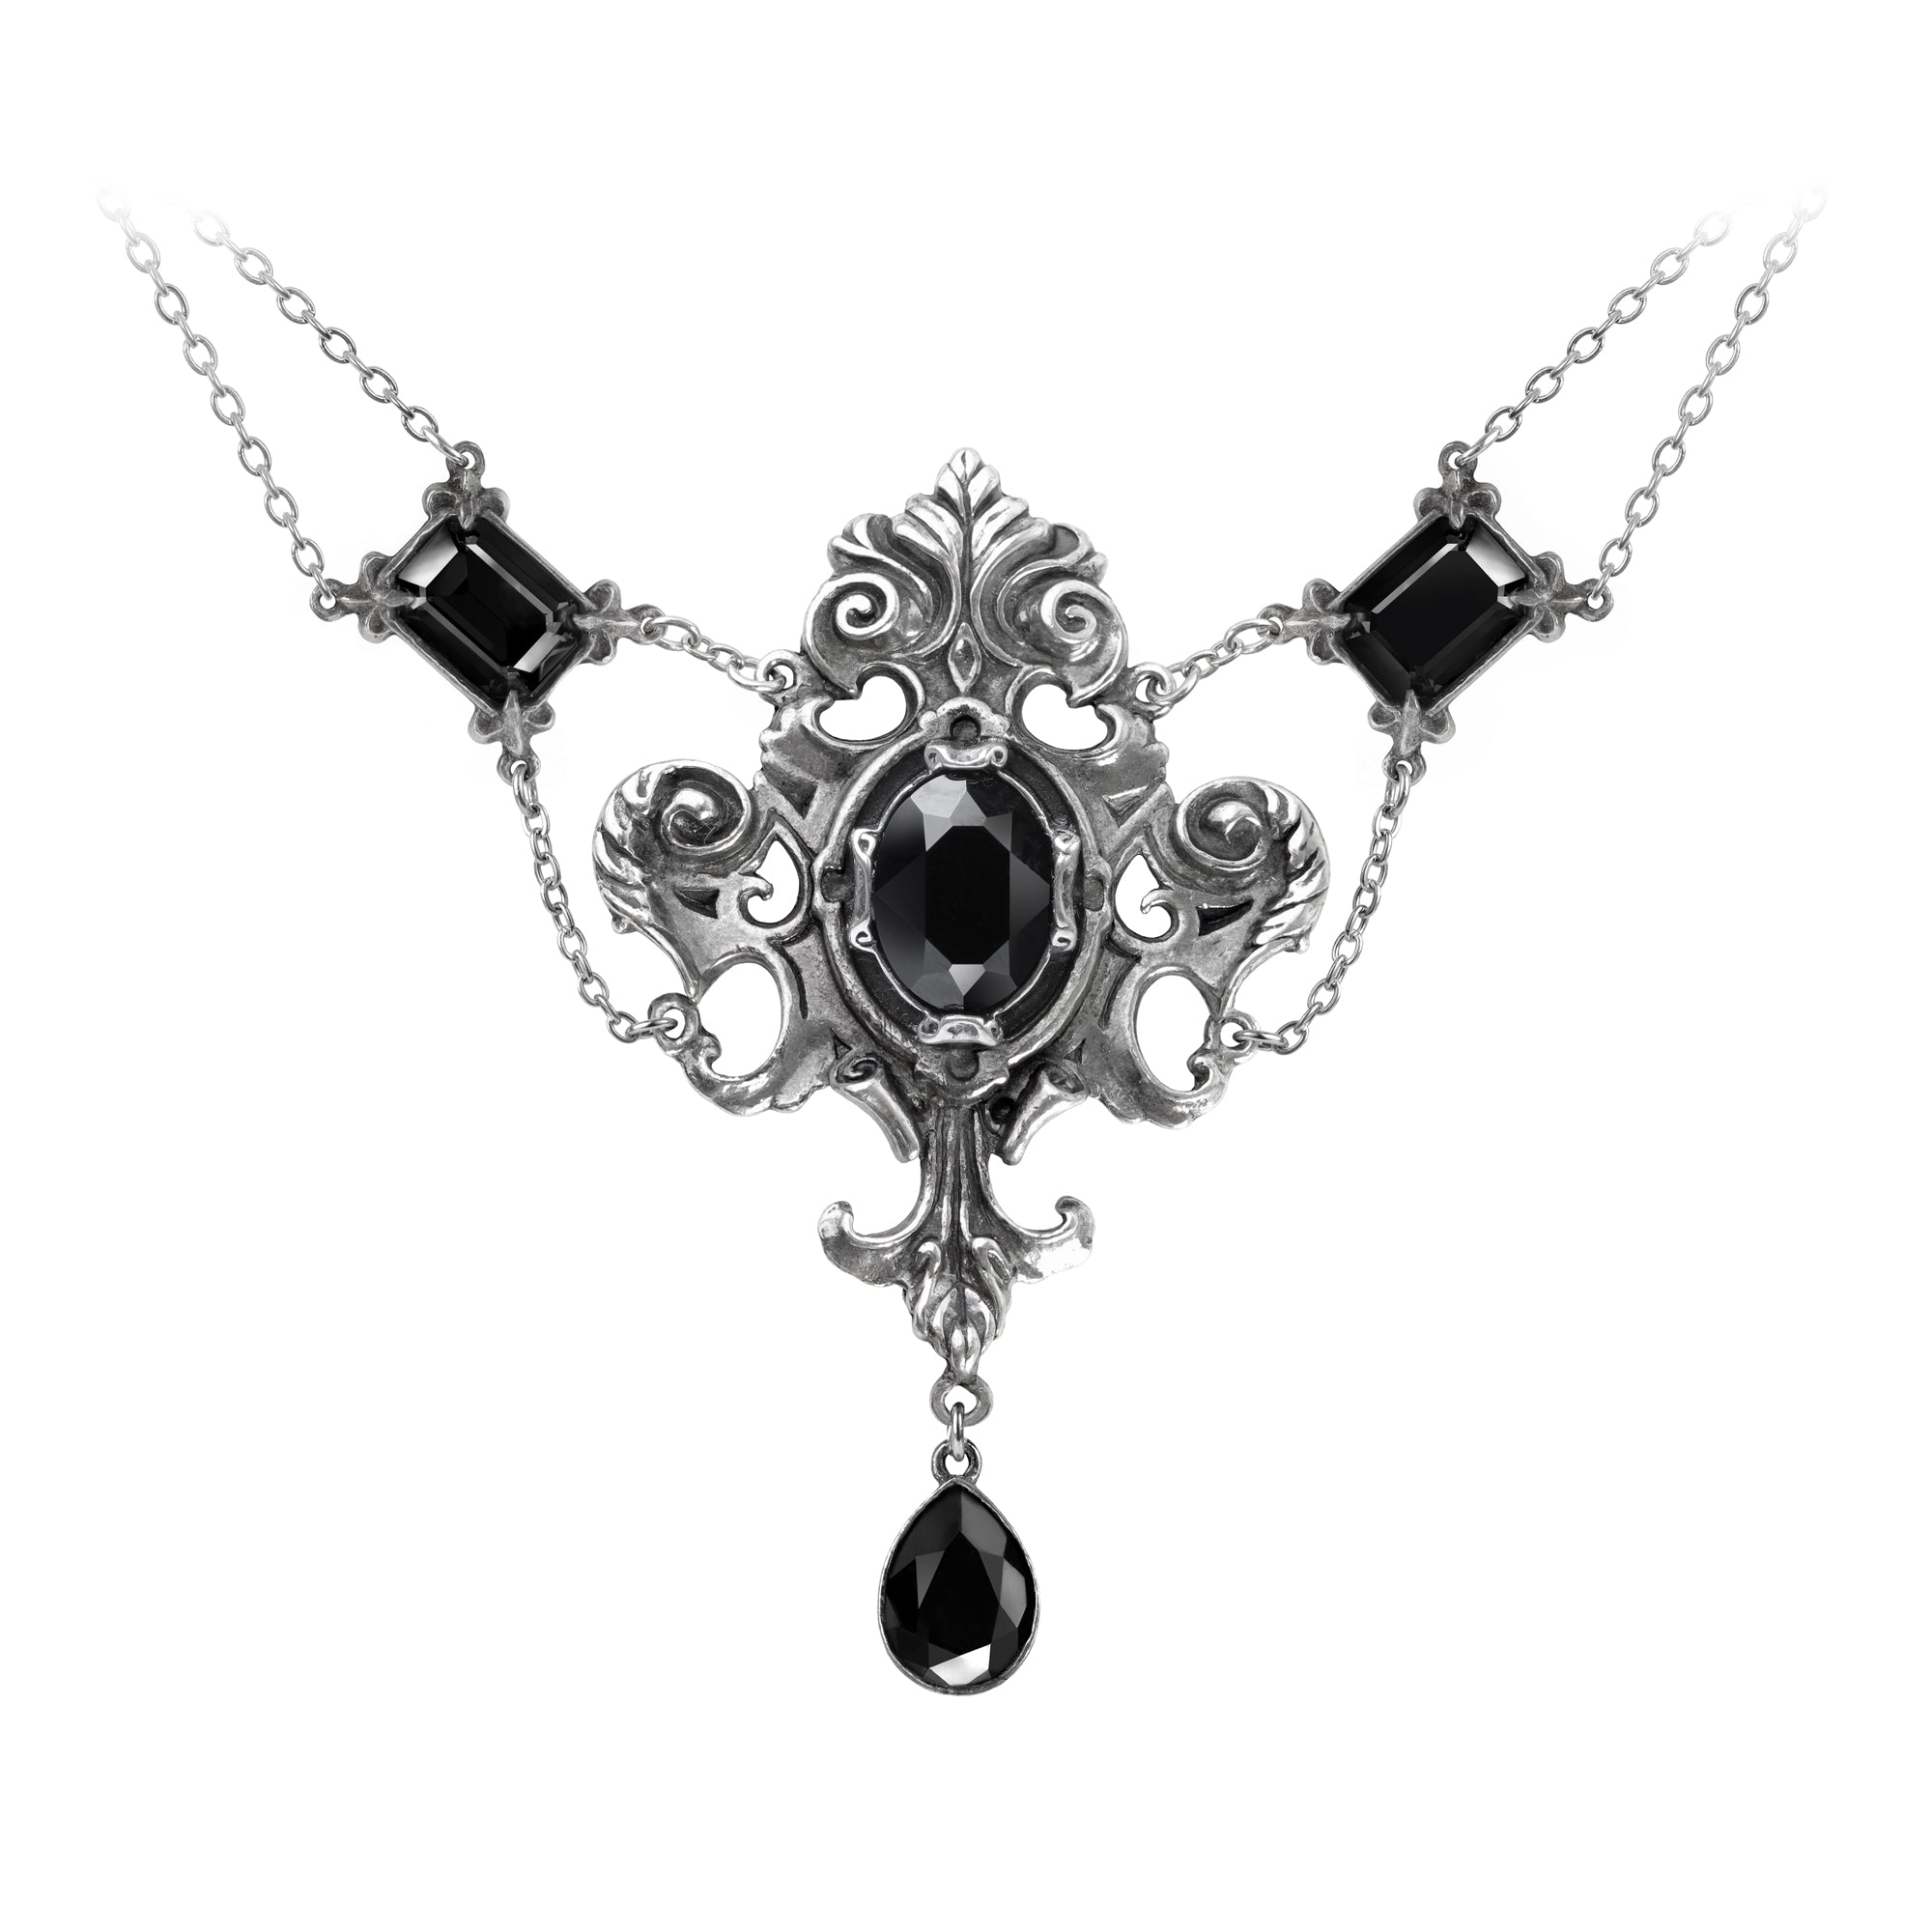 Alchemy Gothic Queen Of The Night Necklace from Gothic Spirit